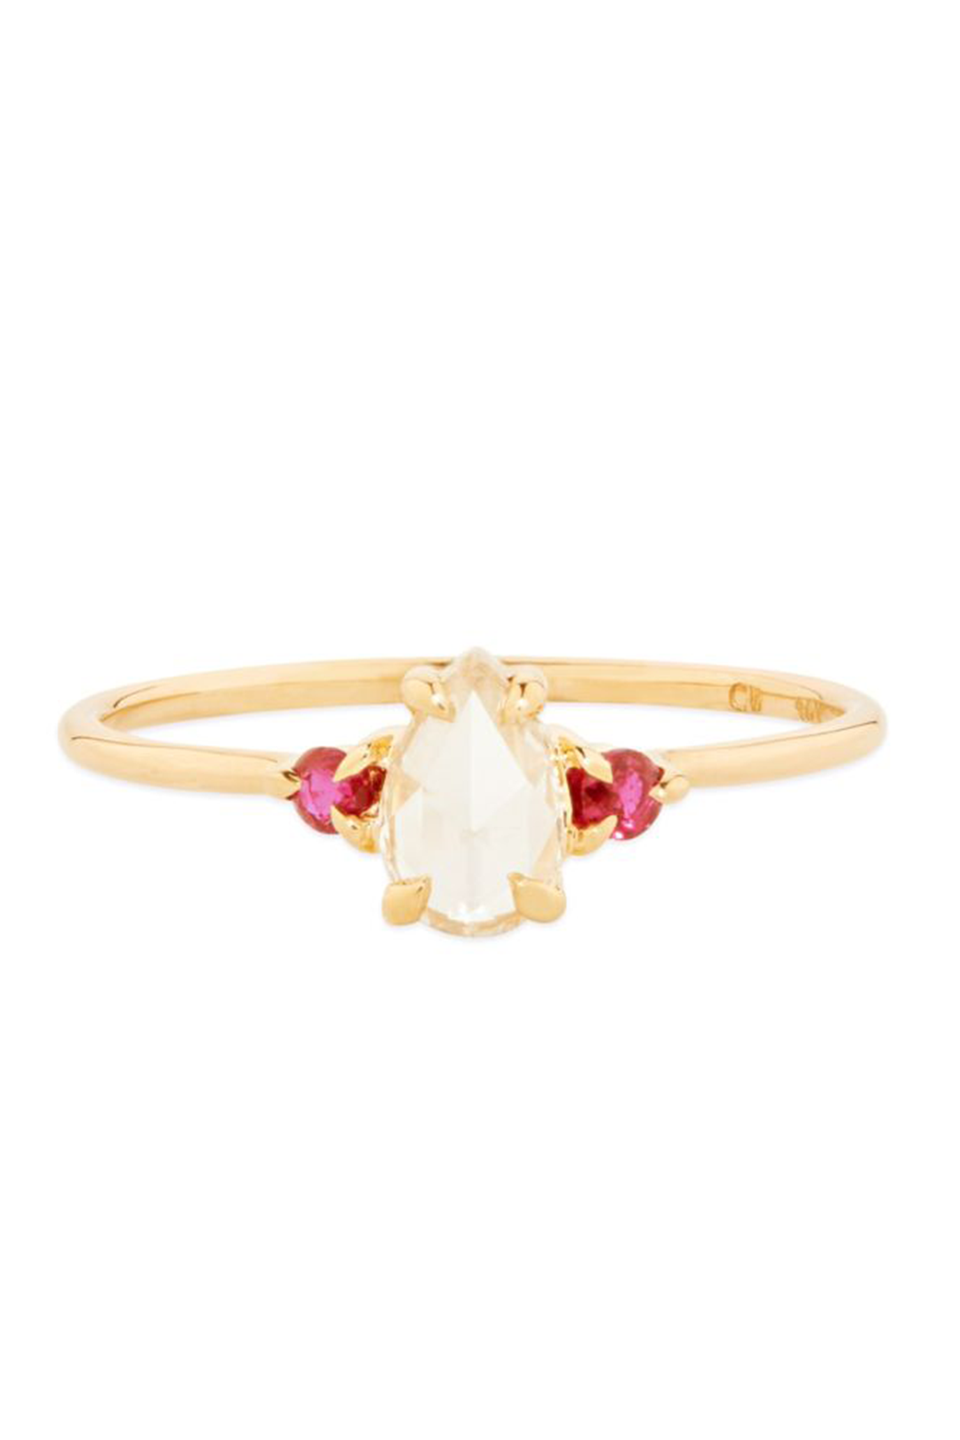 "<p>Petite ruby accent stones complement this petite ring, creating rose undertones throughout the entire piece.</p><p><em>""Leda The Swan"" ring with rubies, $3.200, <a href=""https://www.catbirdnyc.com/leda-the-swan-rubies.html"" rel=""nofollow noopener"" target=""_blank"" data-ylk=""slk:catbirdnyc.com"" class=""link rapid-noclick-resp"">catbirdnyc.com</a>.</em></p><p><a class=""link rapid-noclick-resp"" href=""https://go.redirectingat.com?id=74968X1596630&url=https%3A%2F%2Fwww.catbirdnyc.com%2Fleda-the-swan-rubies.html&sref=https%3A%2F%2Fwww.harpersbazaar.com%2Fwedding%2Fbridal-fashion%2Fg24856146%2Fruby-engagement-rings%2F"" rel=""nofollow noopener"" target=""_blank"" data-ylk=""slk:SHOP"">SHOP</a></p>"